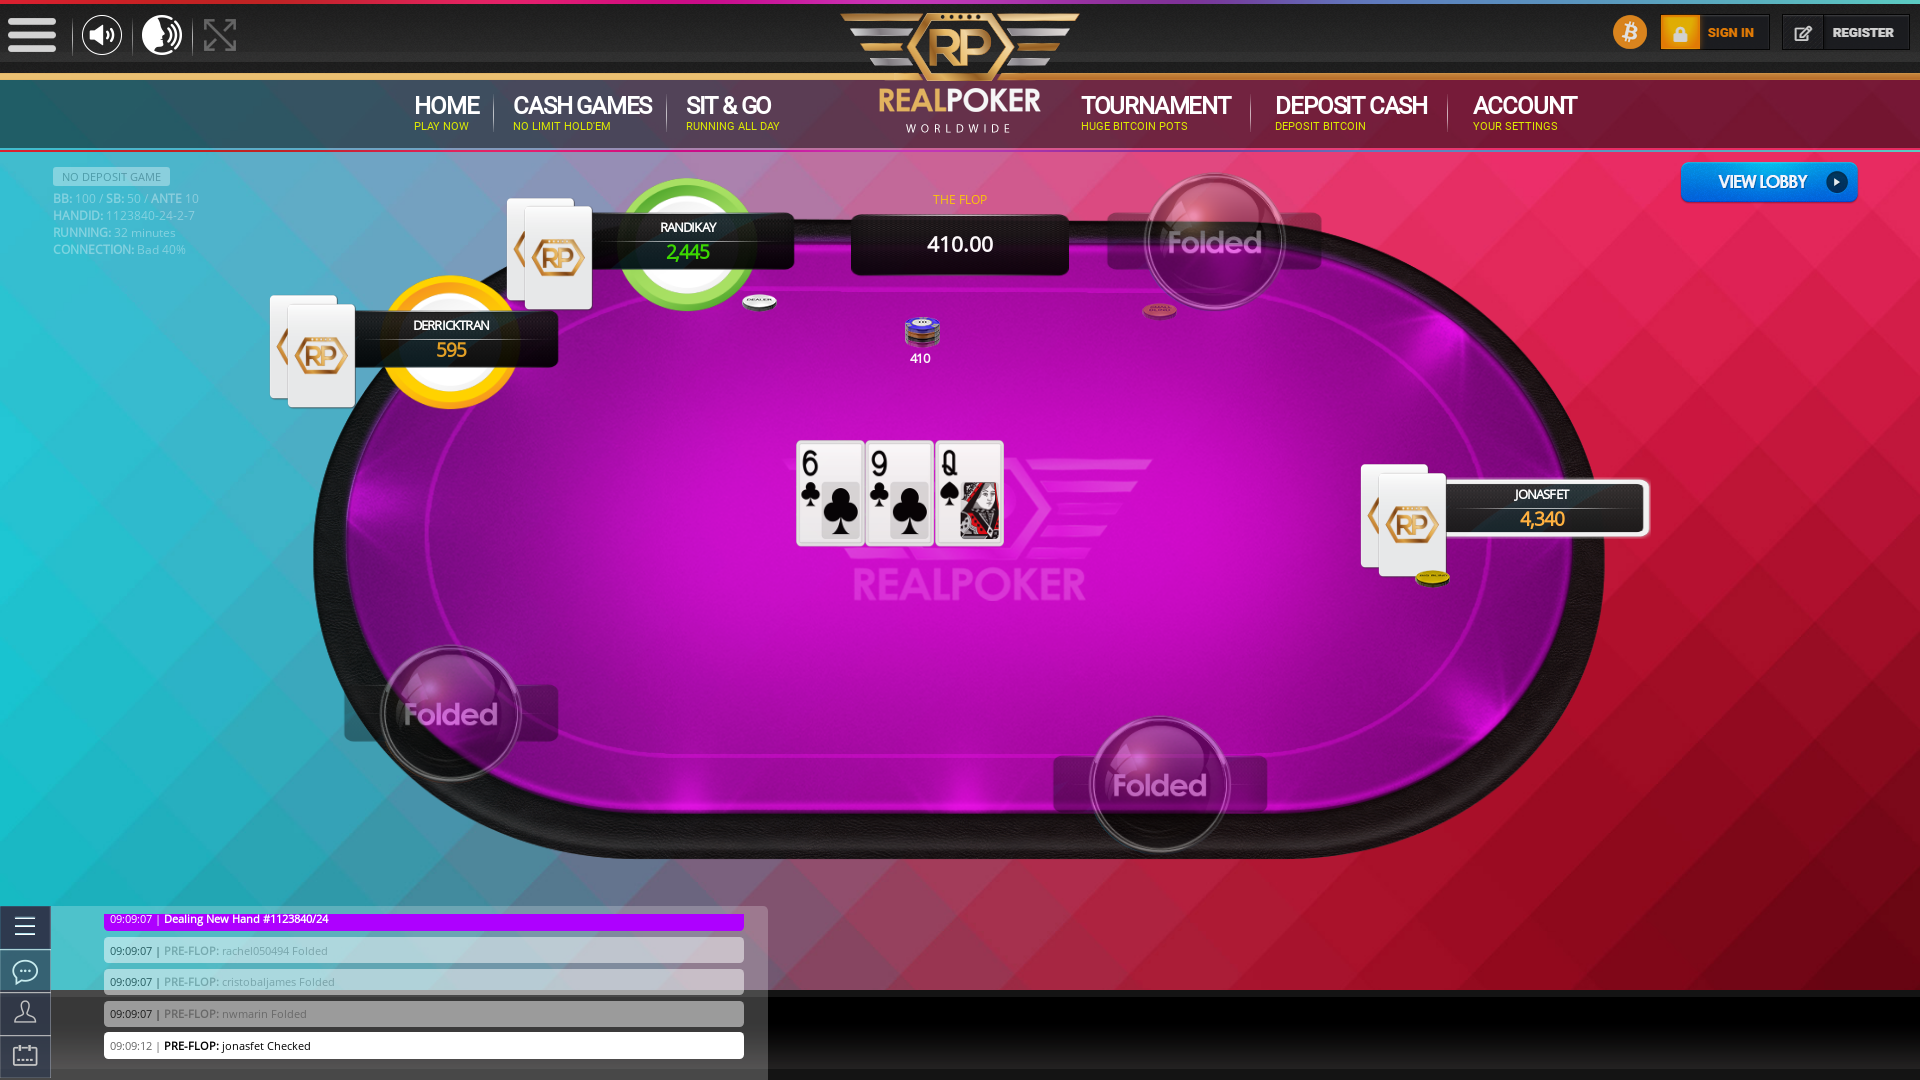 Malta 10 player poker in the 32nd minute